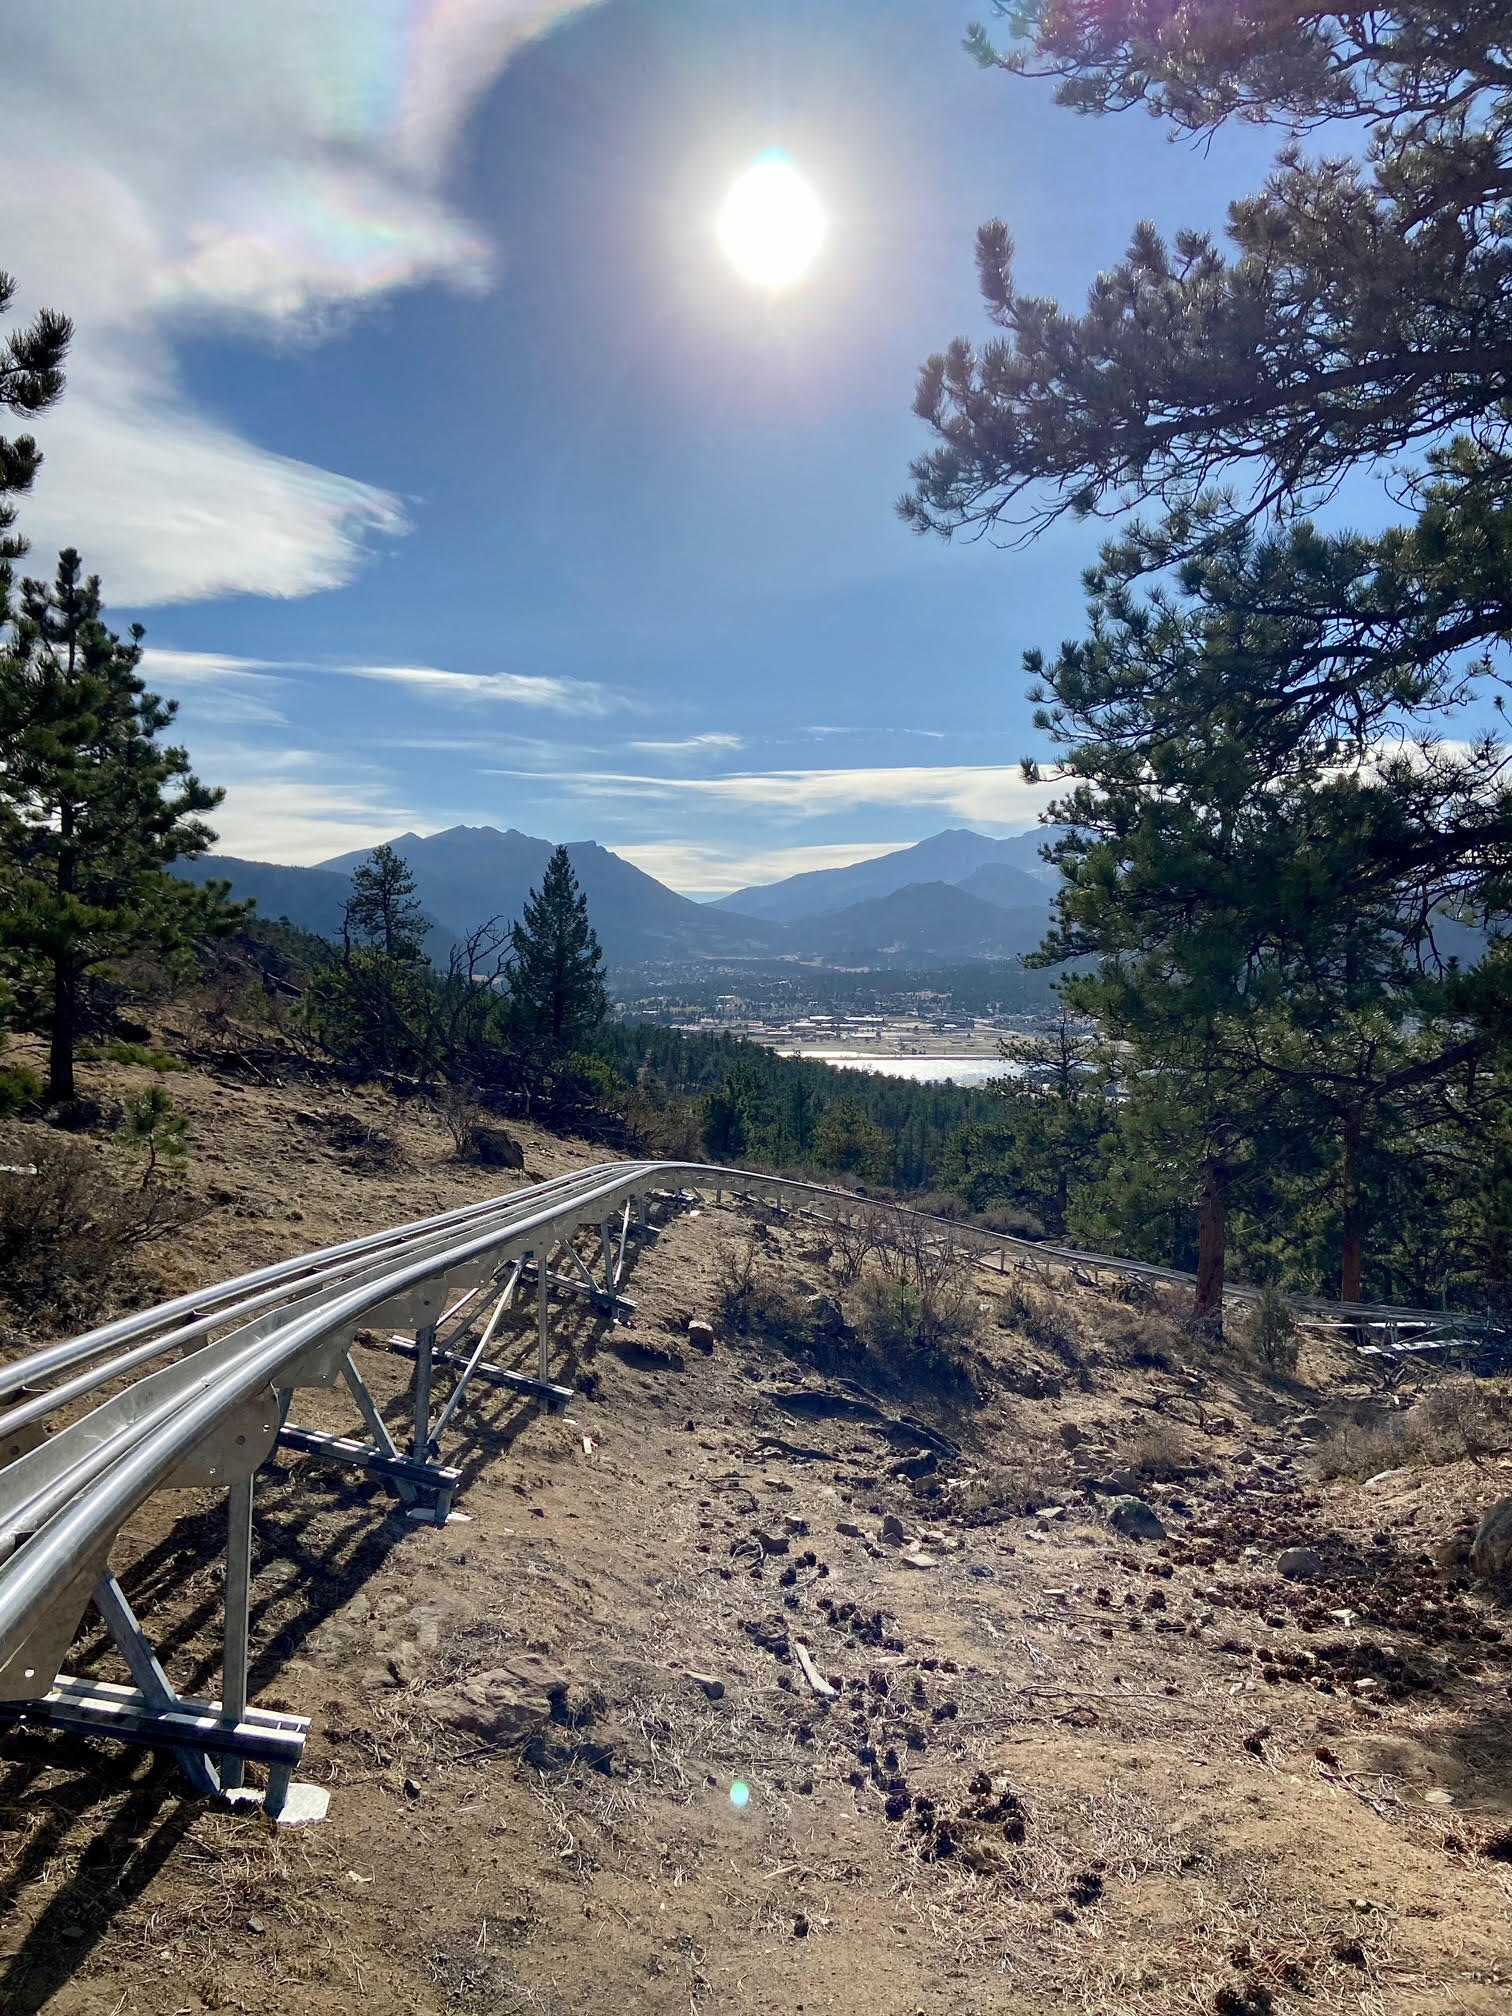 Mustang Mountain Coaster is the newest Colorado mountain coaster